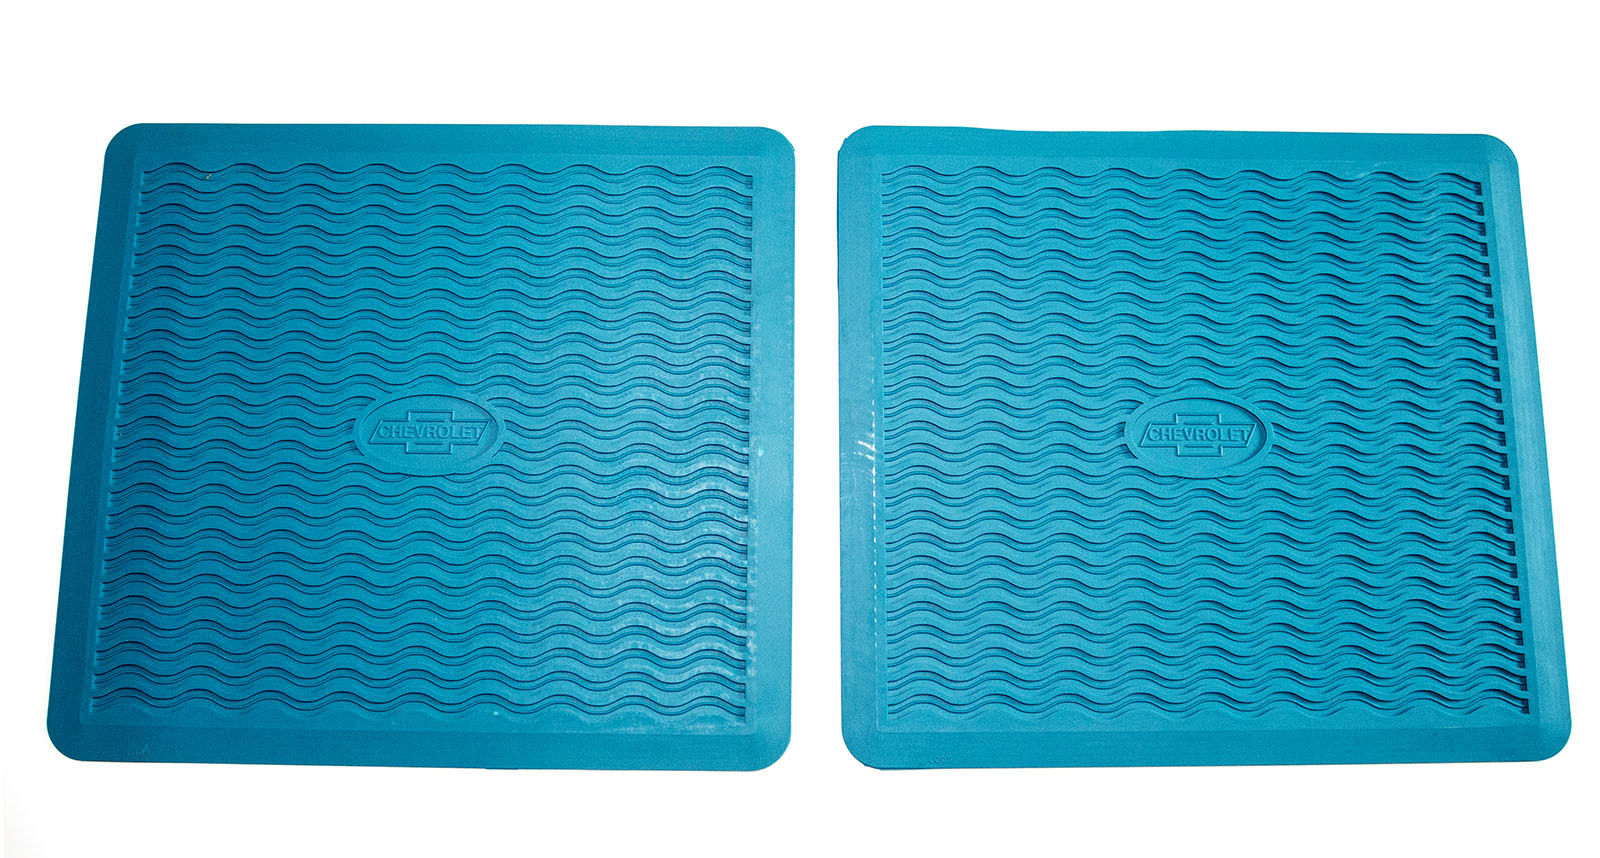 1955 1956 Chevy Factory Accessory Floor Mats TURQUOISE